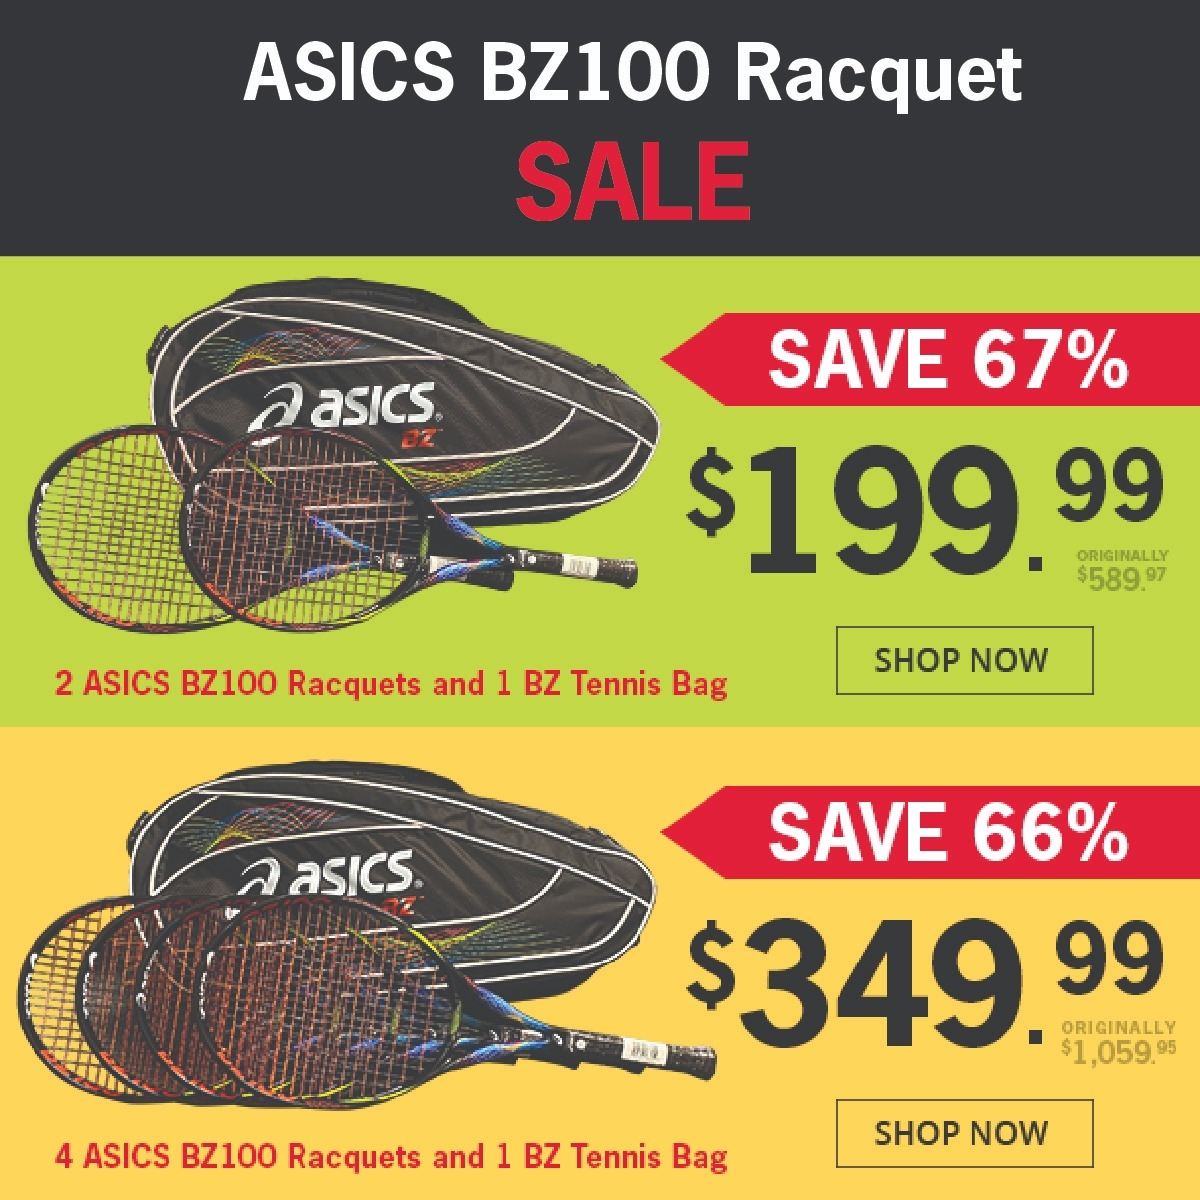 The Best Deal You'll Find on a Graphite Tennis Racquet